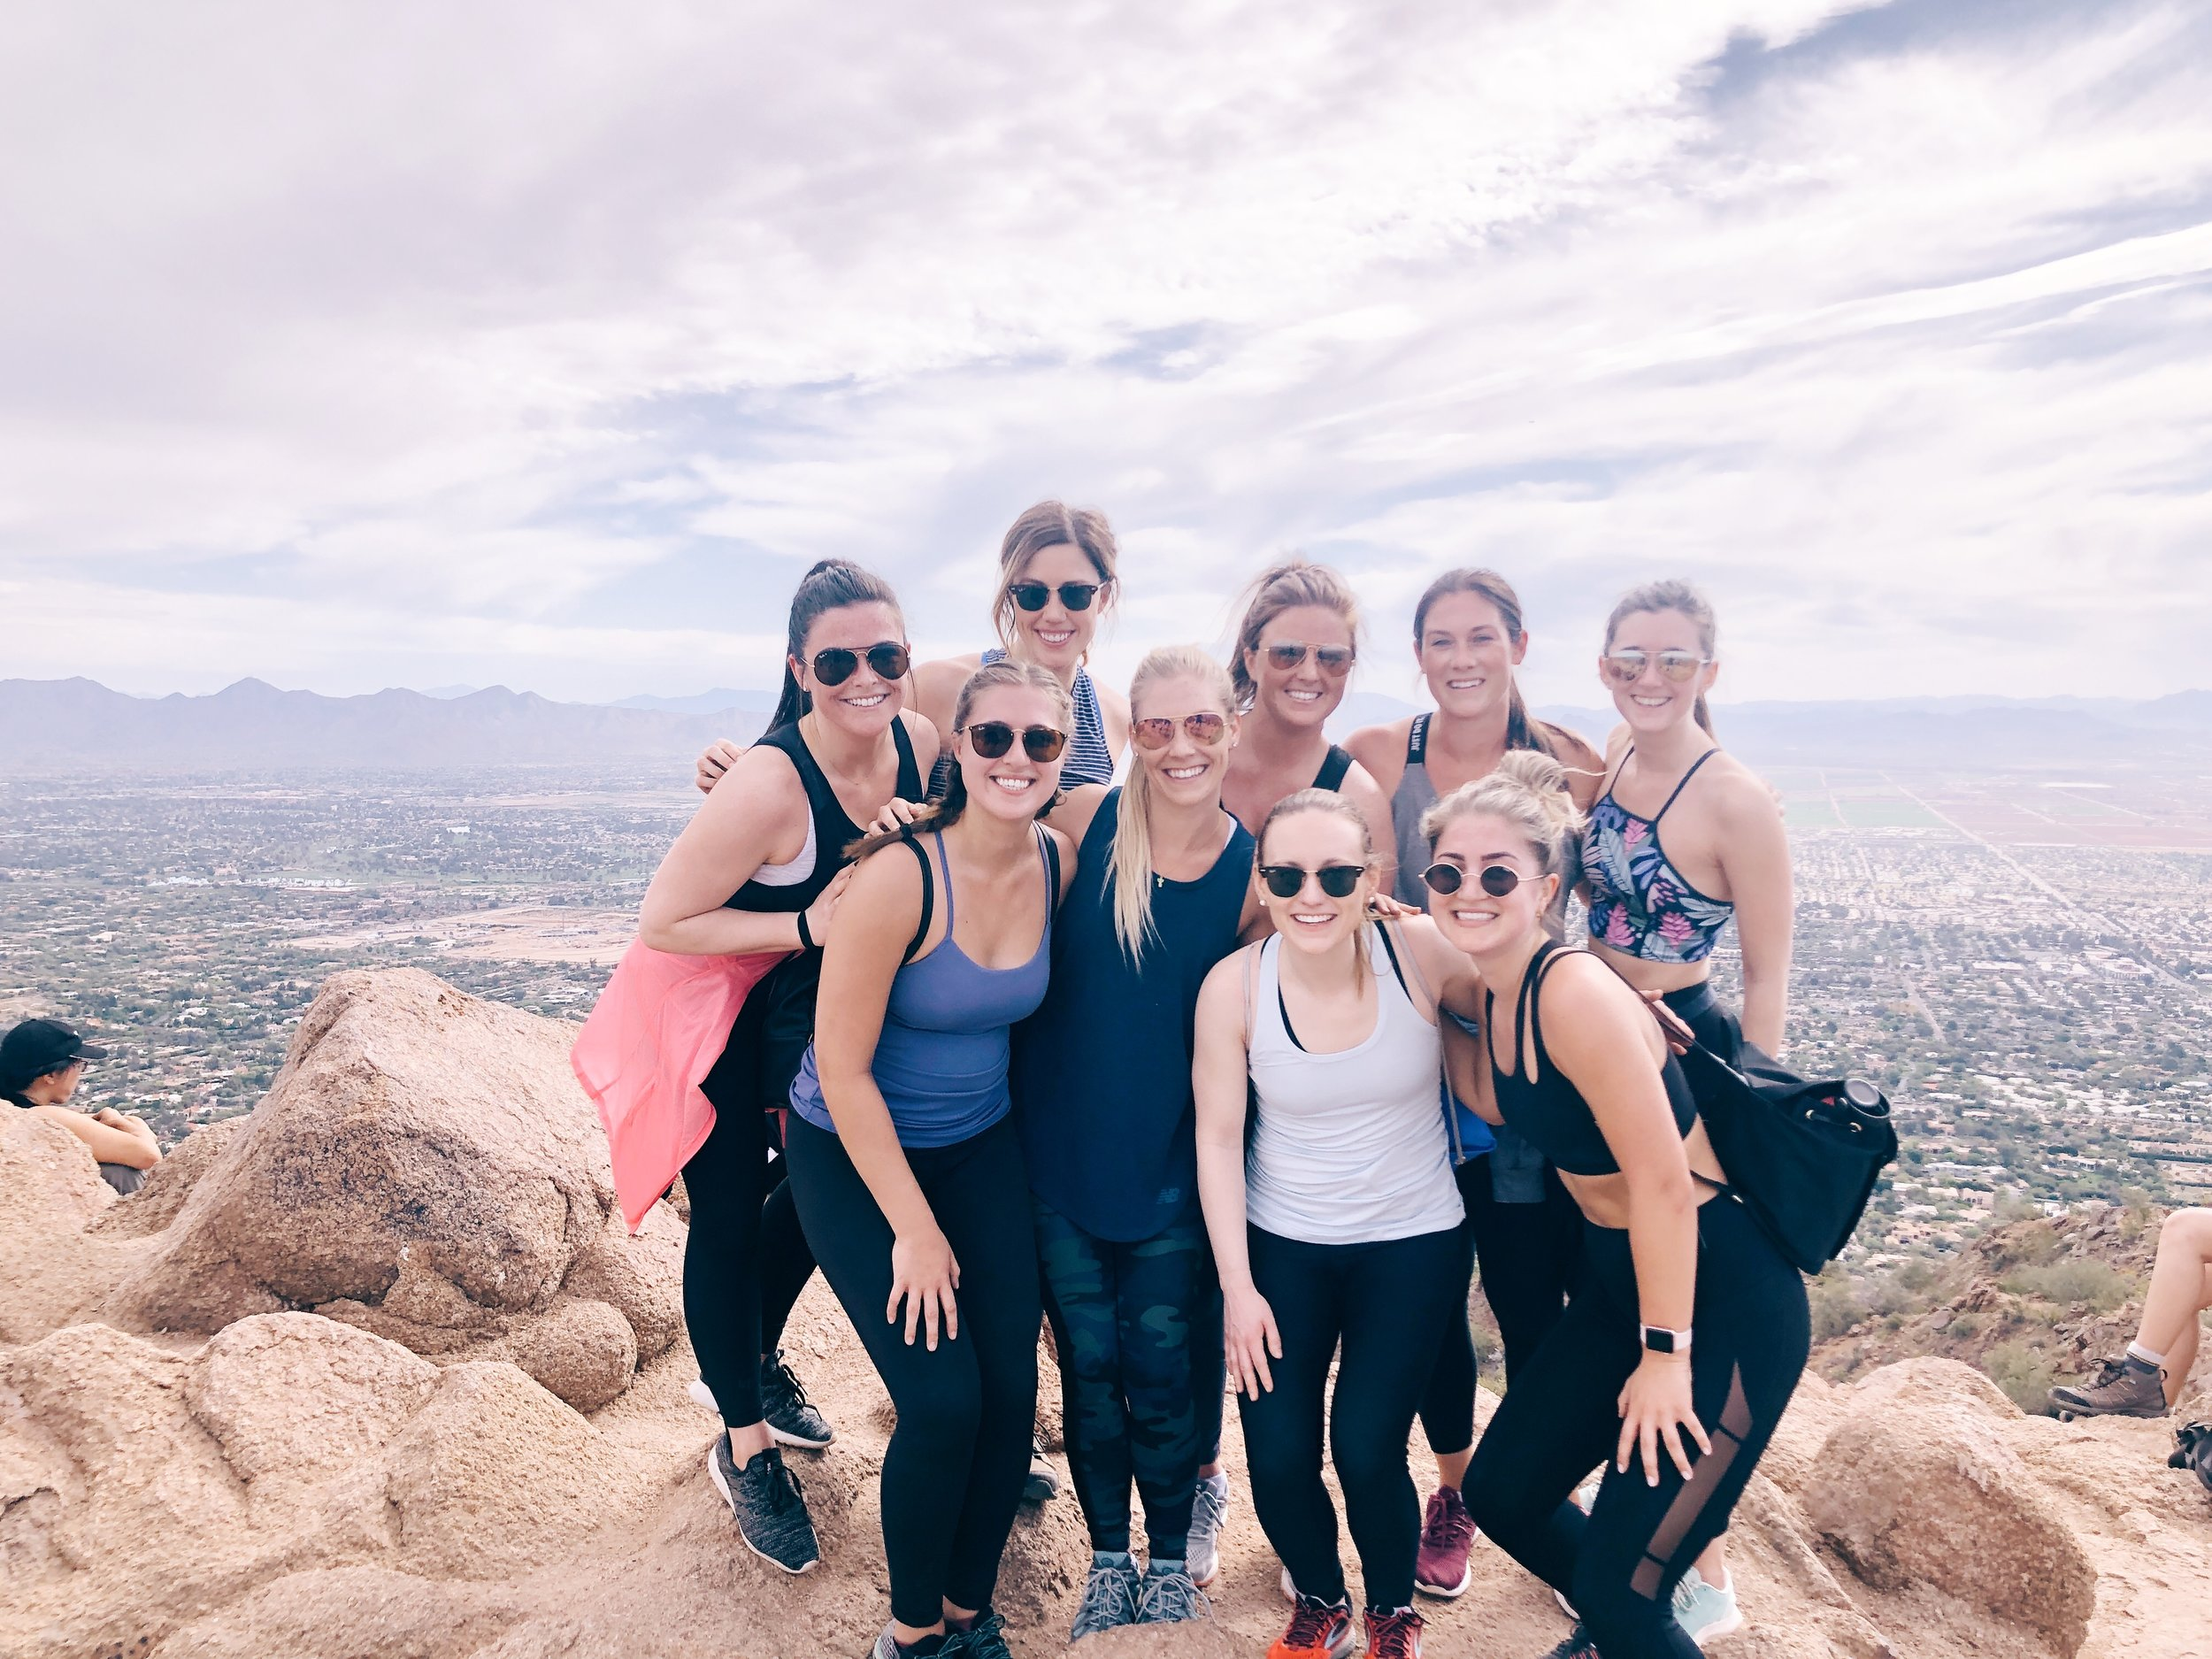 camelback mountain group.JPG